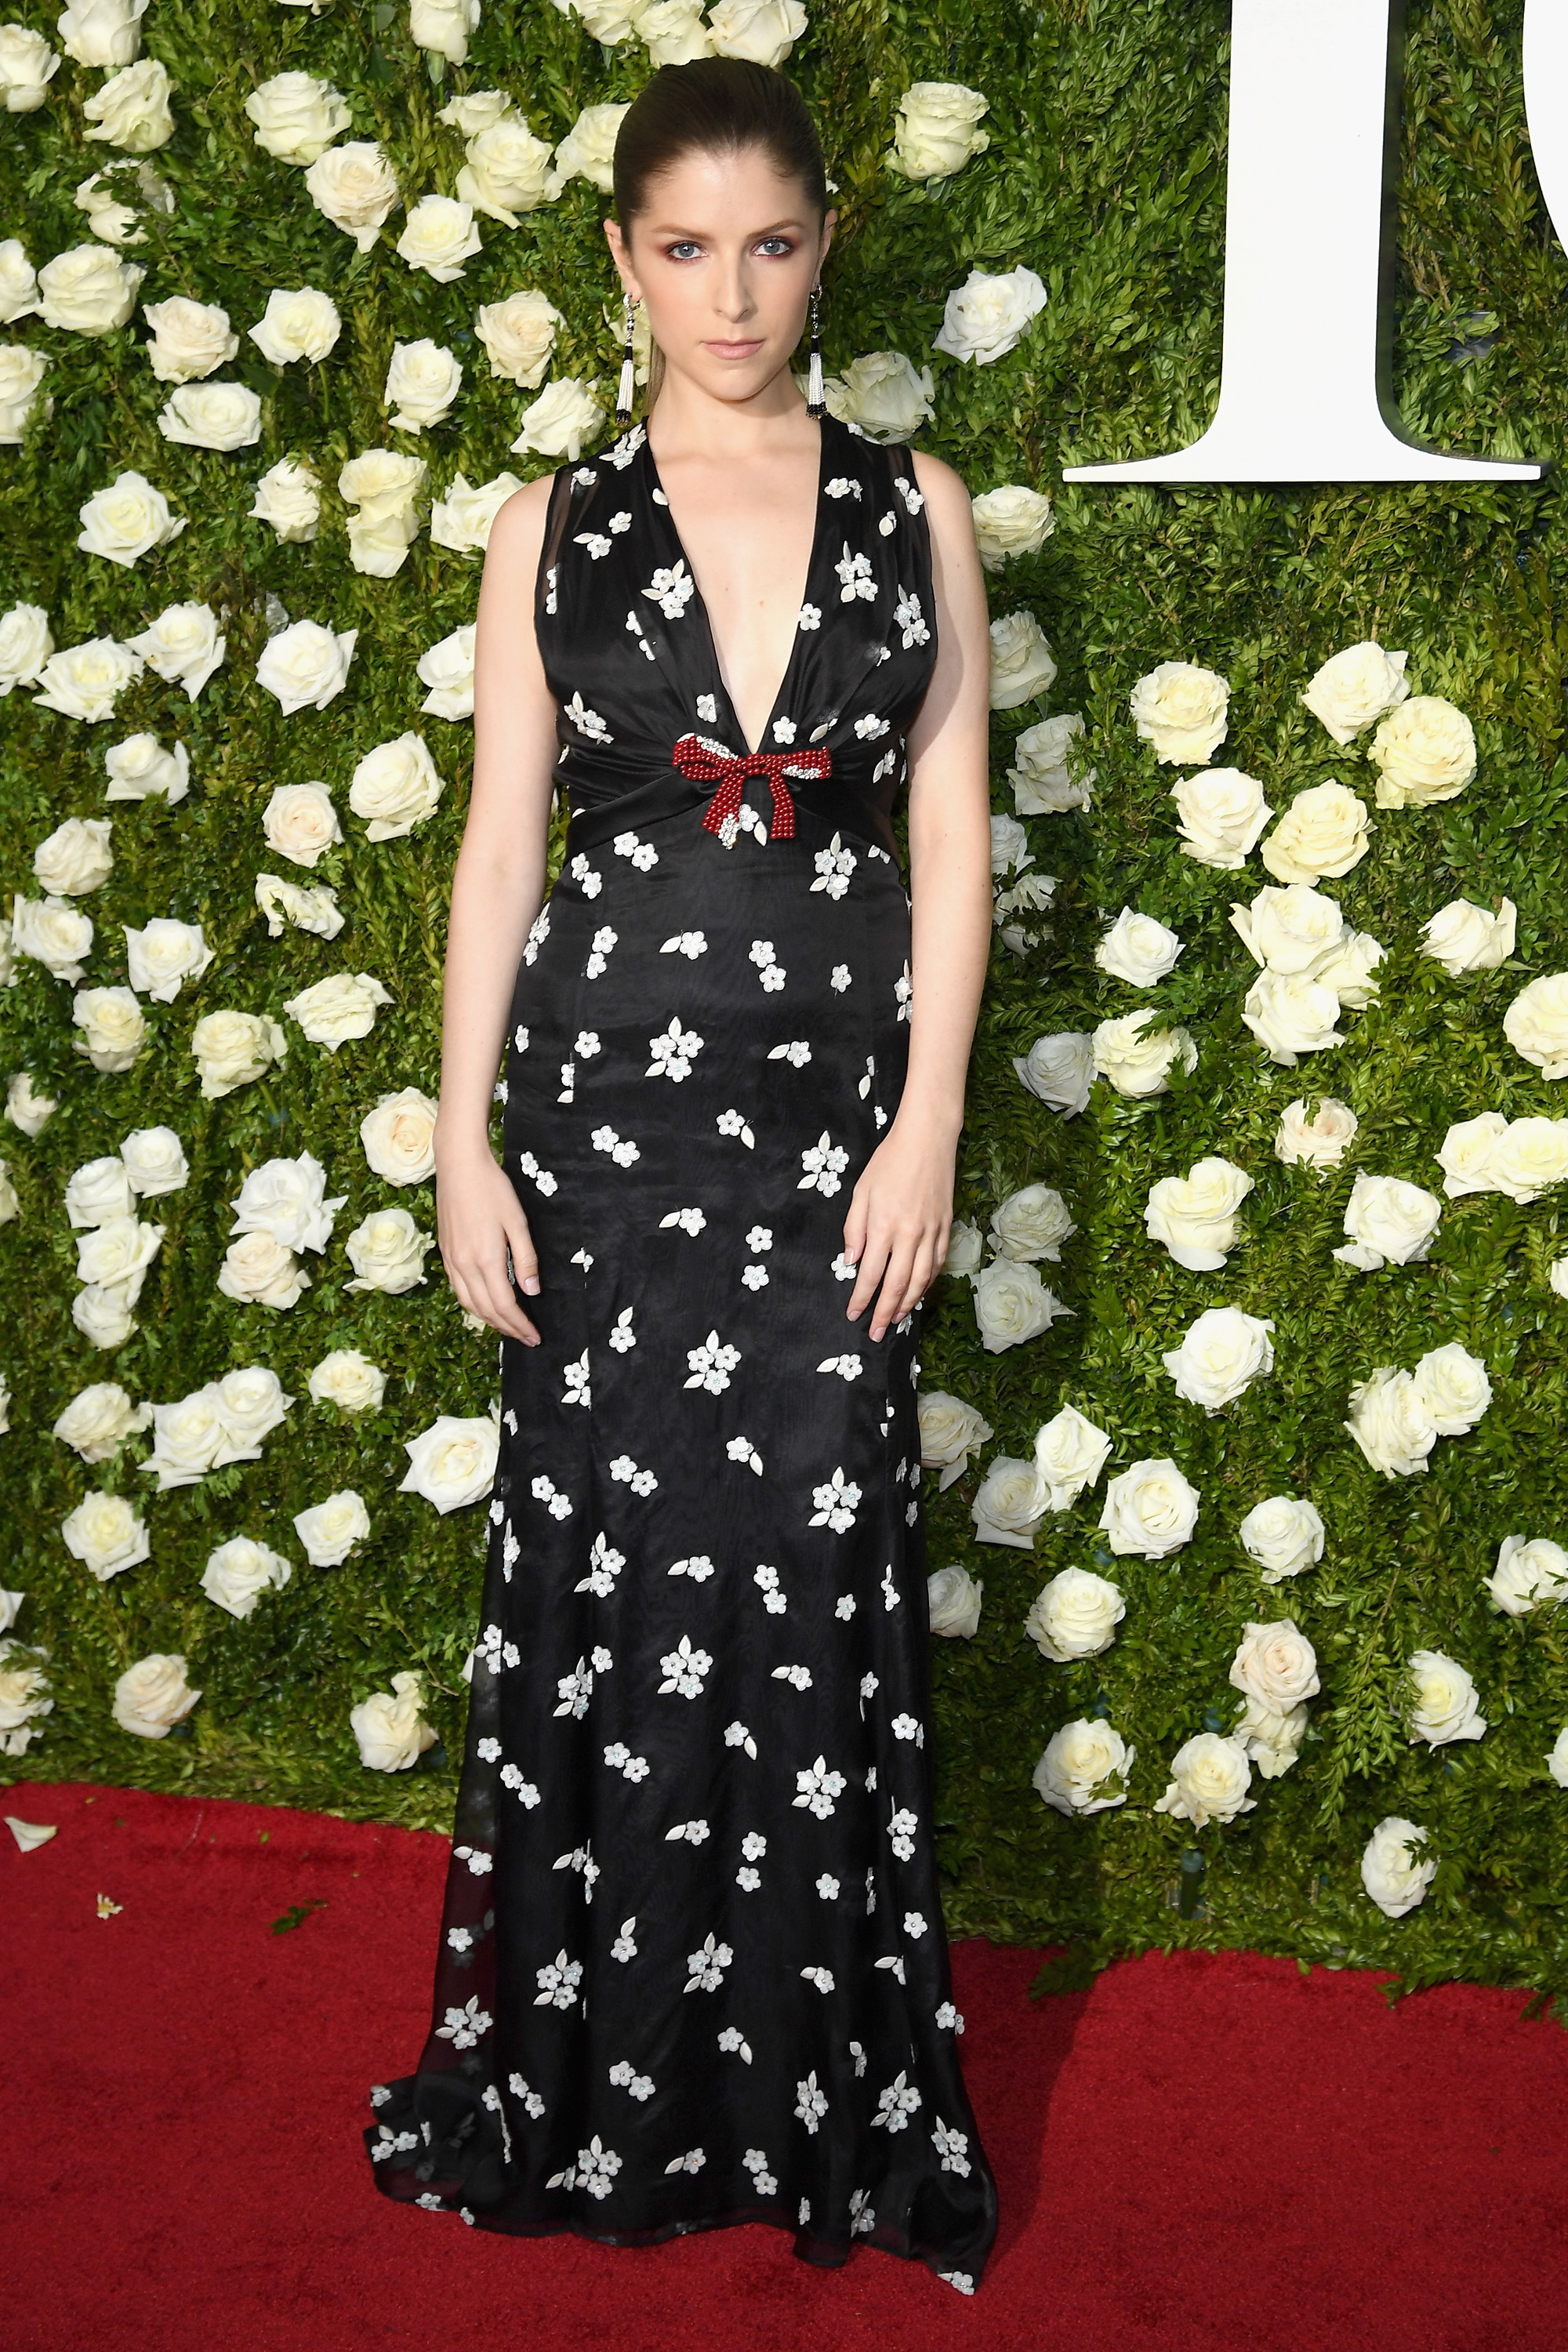 NEW YORK, NY - JUNE 11:  Actress Anna Kendrick attends the 2017 Tony Awards at Radio City Music Hall on June 11, 2017 in New York City.  (Photo by Dimitrios Kambouris/Getty Images for Tony Awards Productions)